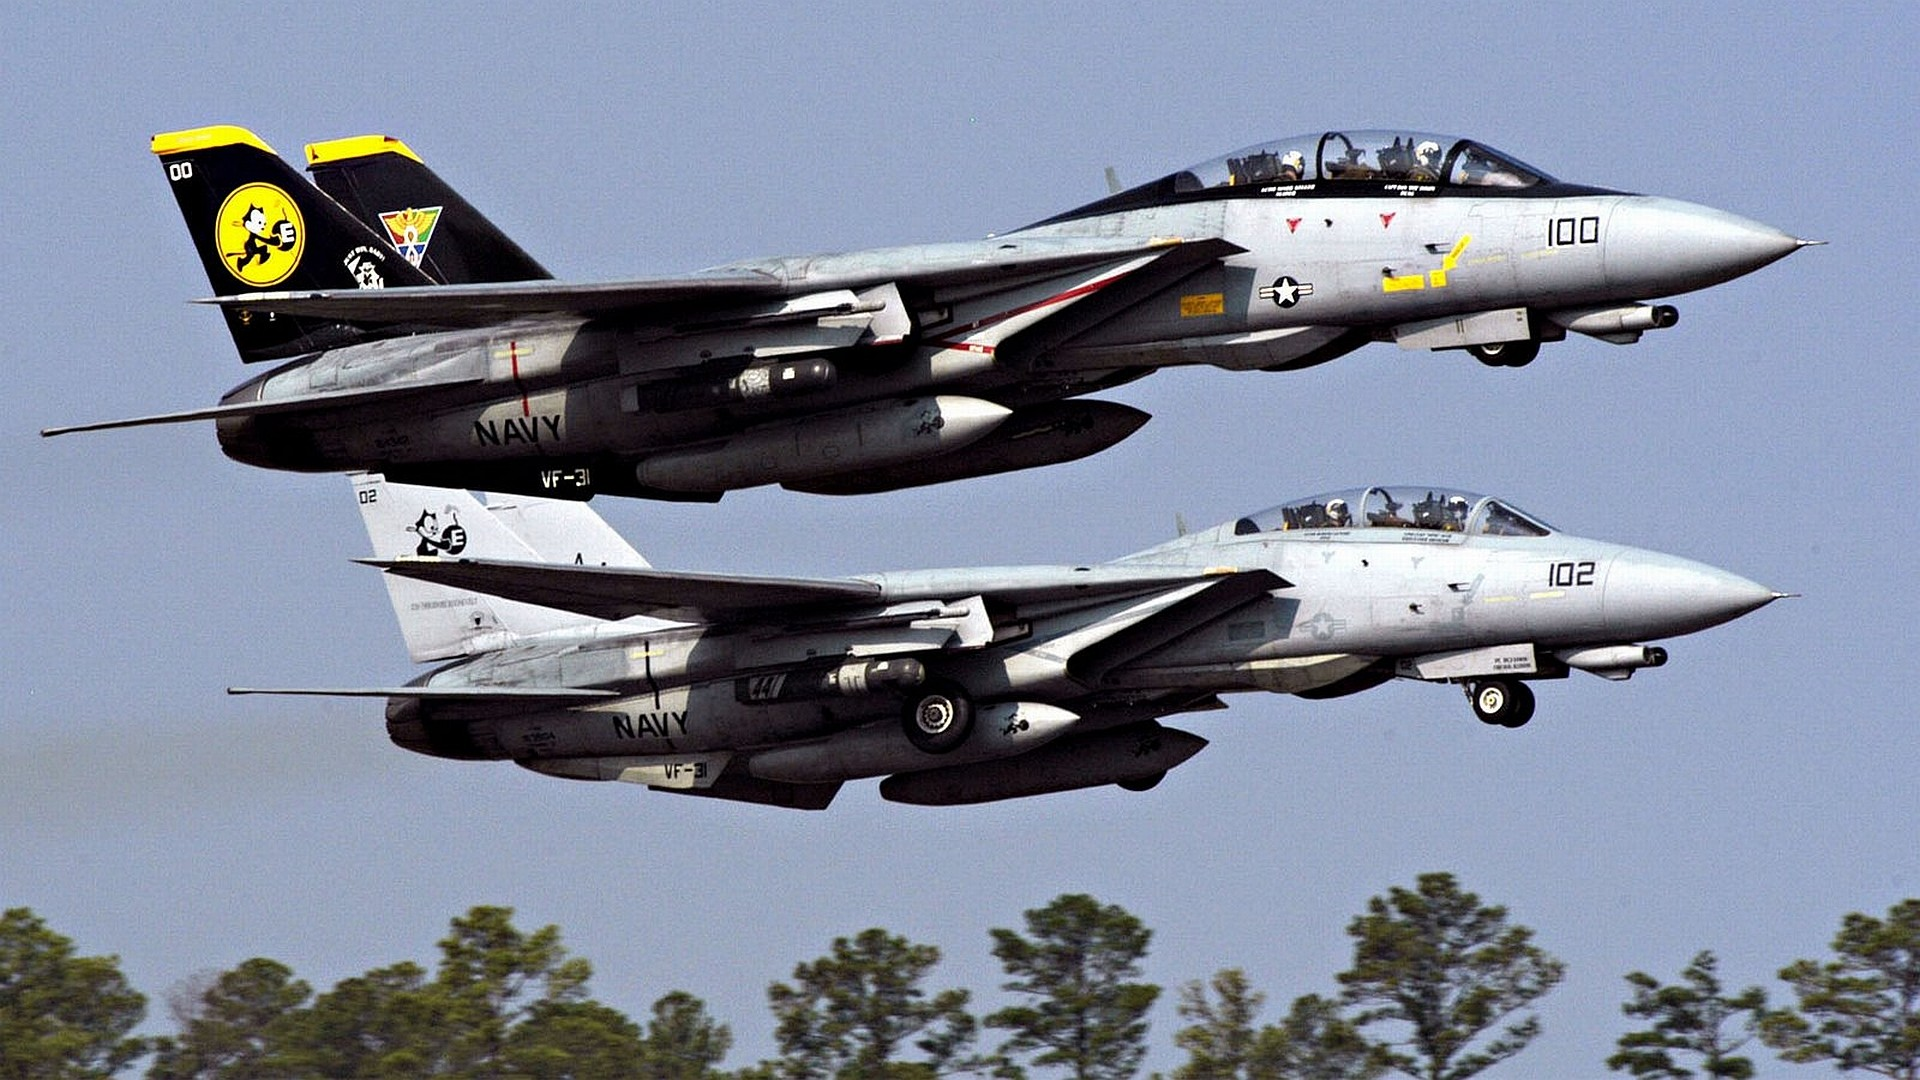 Aircraft Military Us Navy F 14 Tomcat Fighter Jets Wallpaper